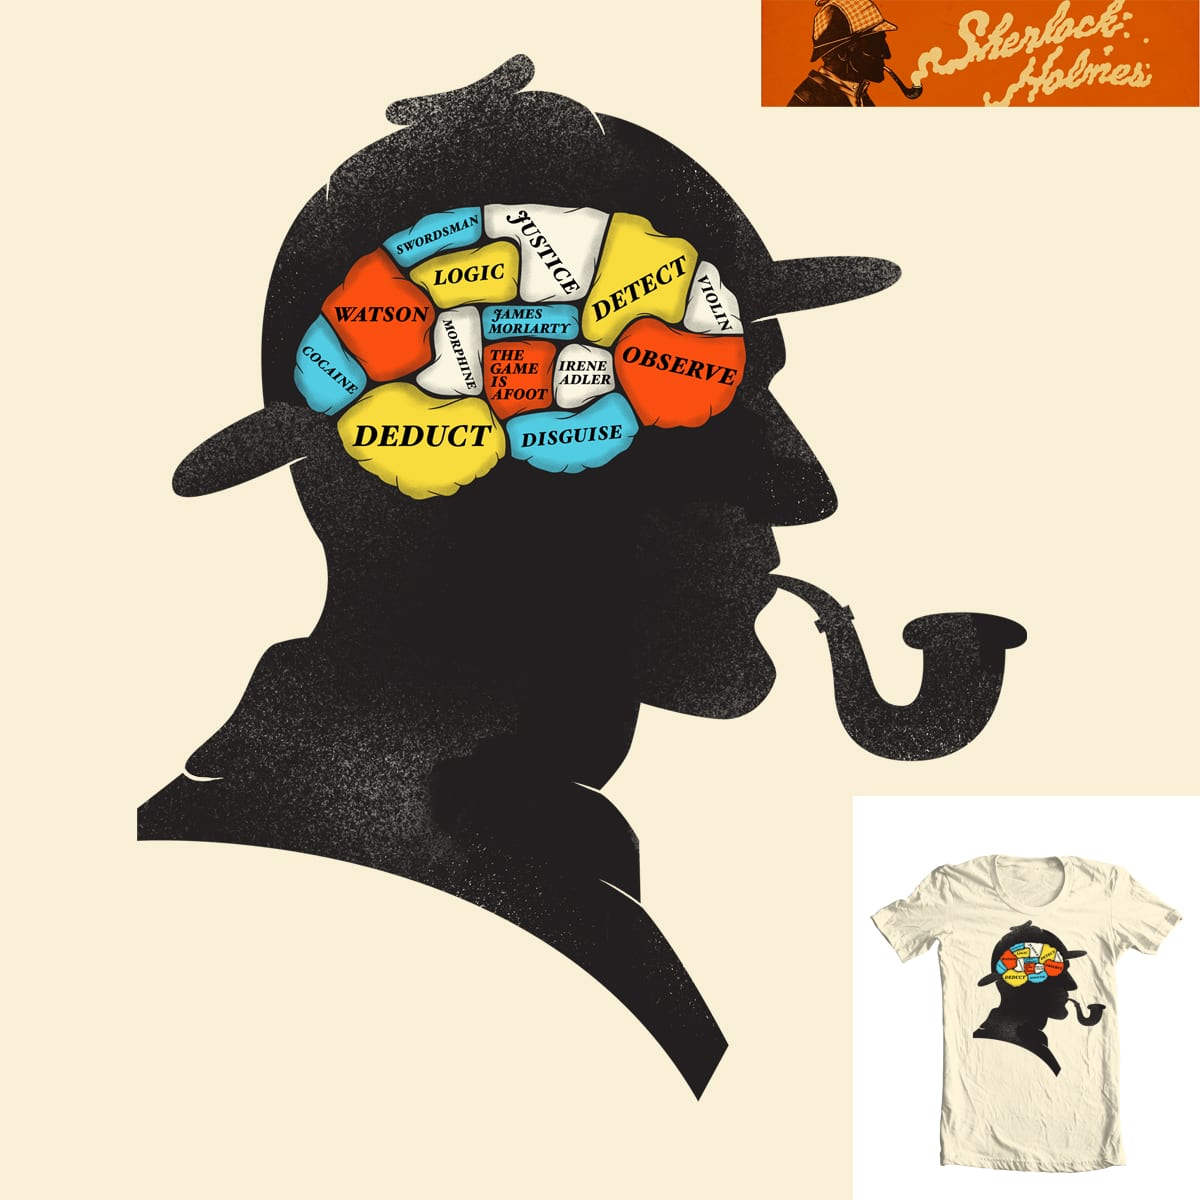 Holmes Phrenology by Wharton on Threadless